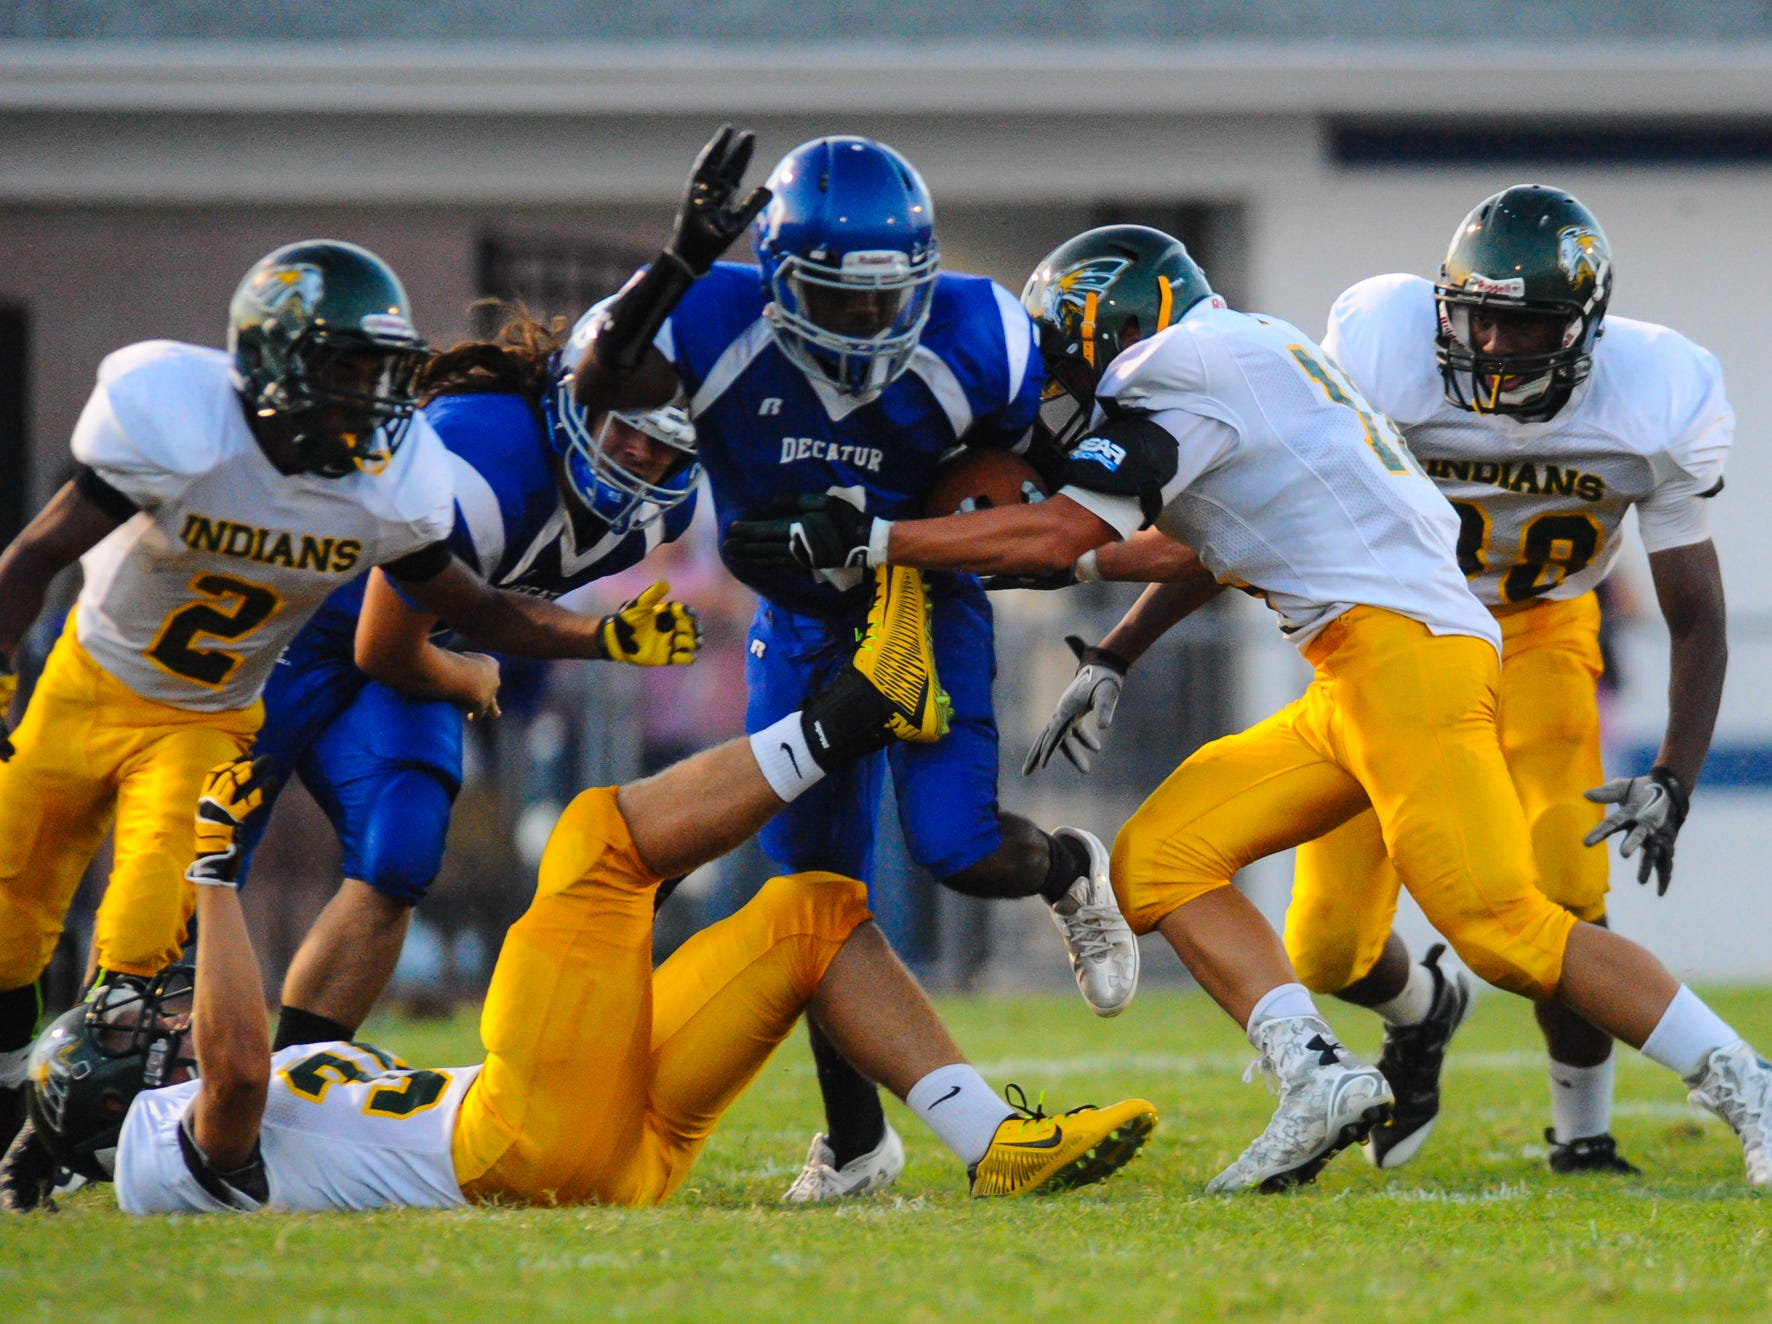 Stephen Decatur running back Dontae Baines eludes tackles by Indian River defenders on Friday night in Berlin.